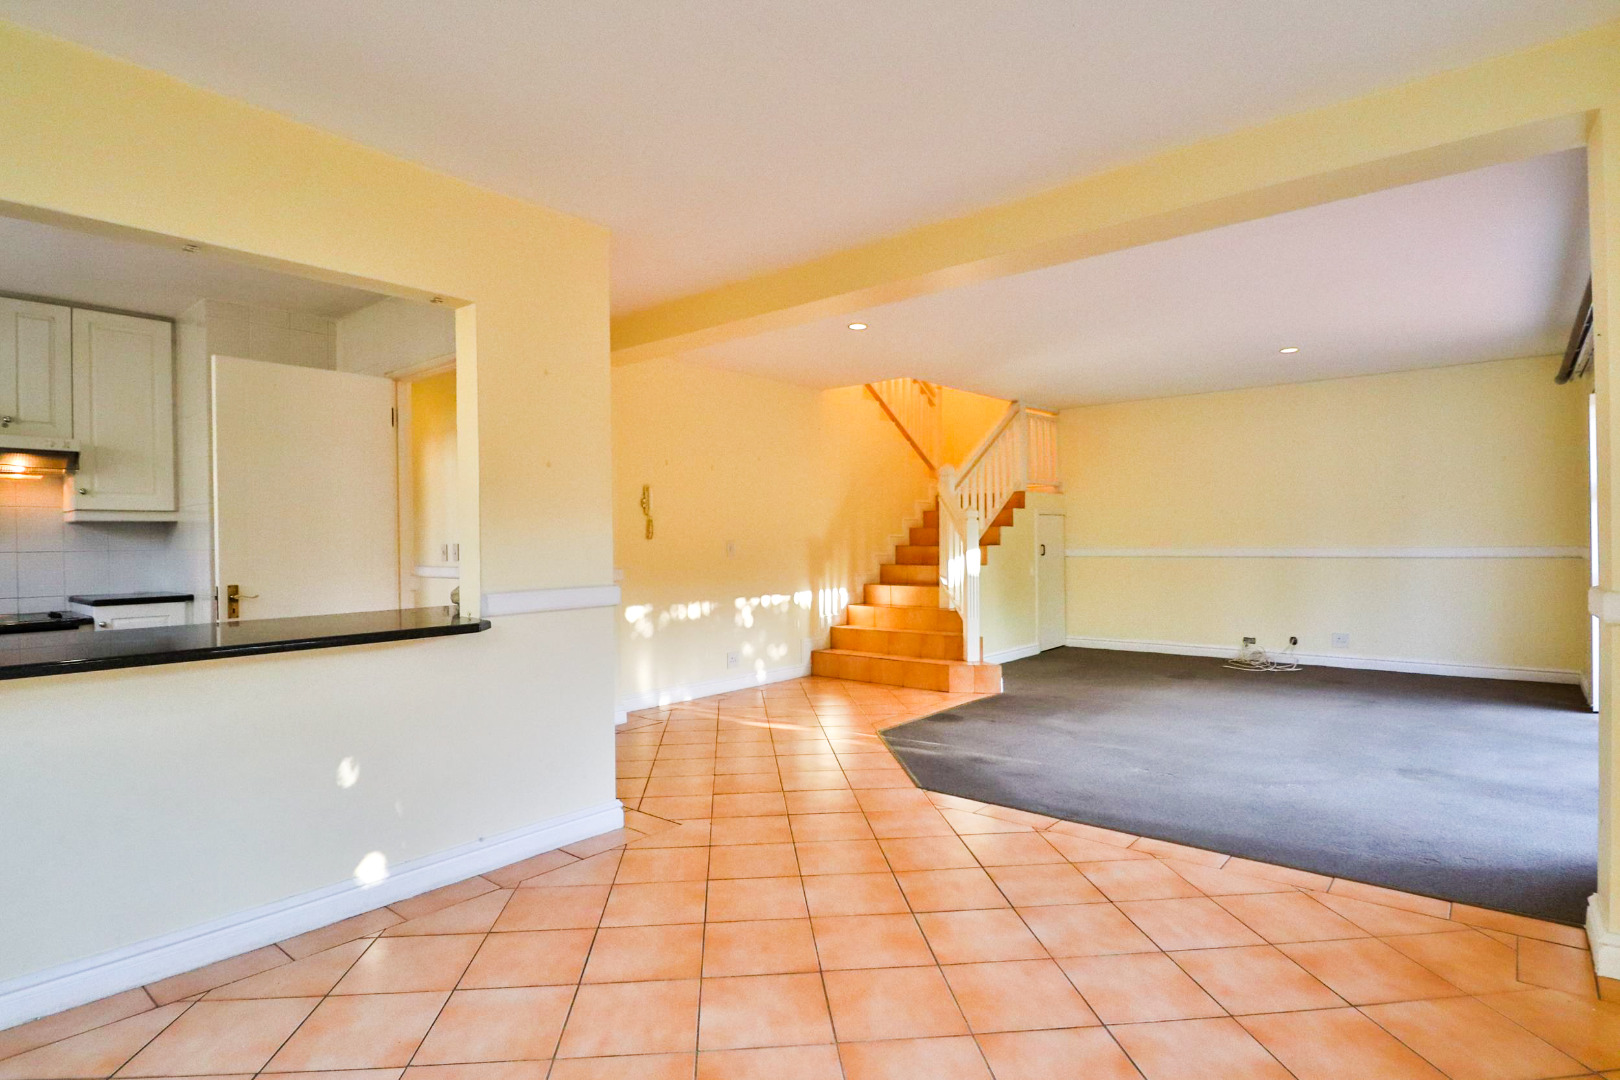 3 Bedroom Townhouse For Sale in Knysna Central